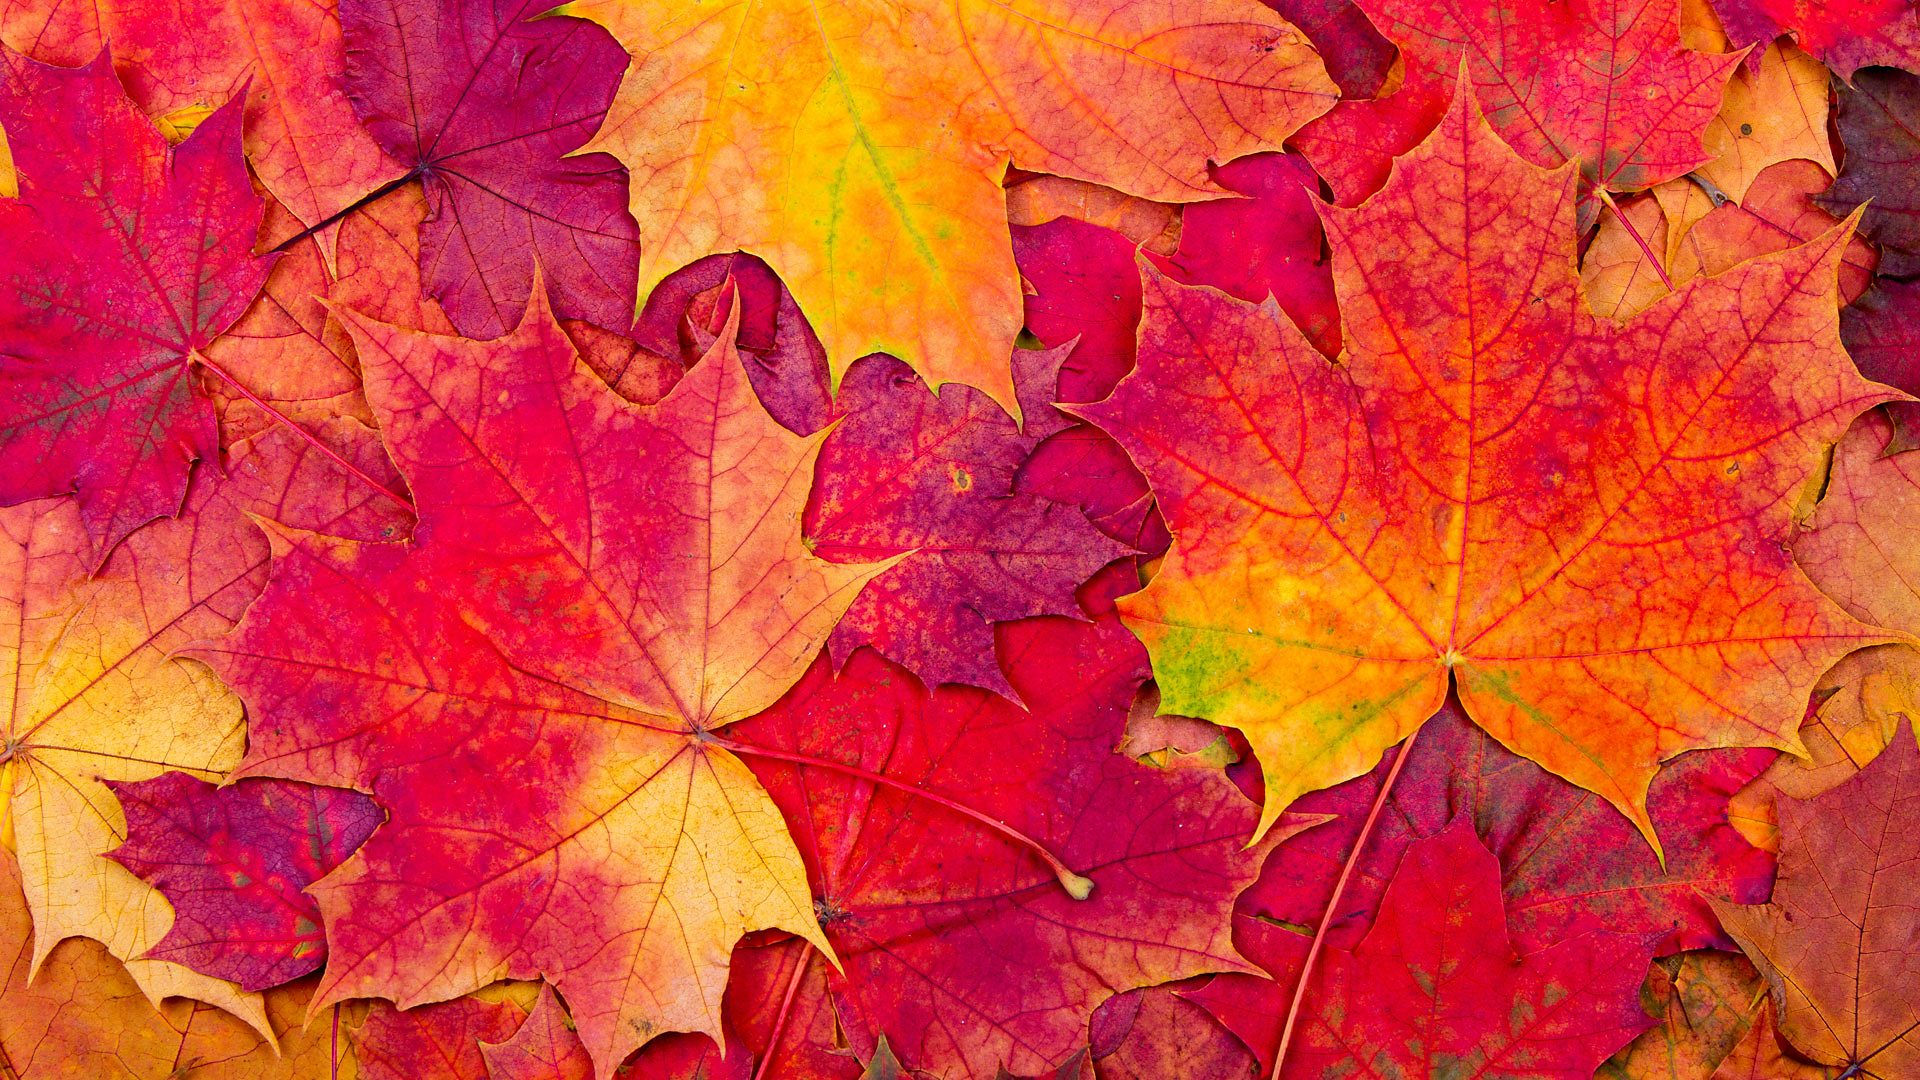 BBC Radio 4 - Four Seasons - Autumn oddities: 22 facts about the 'fall'